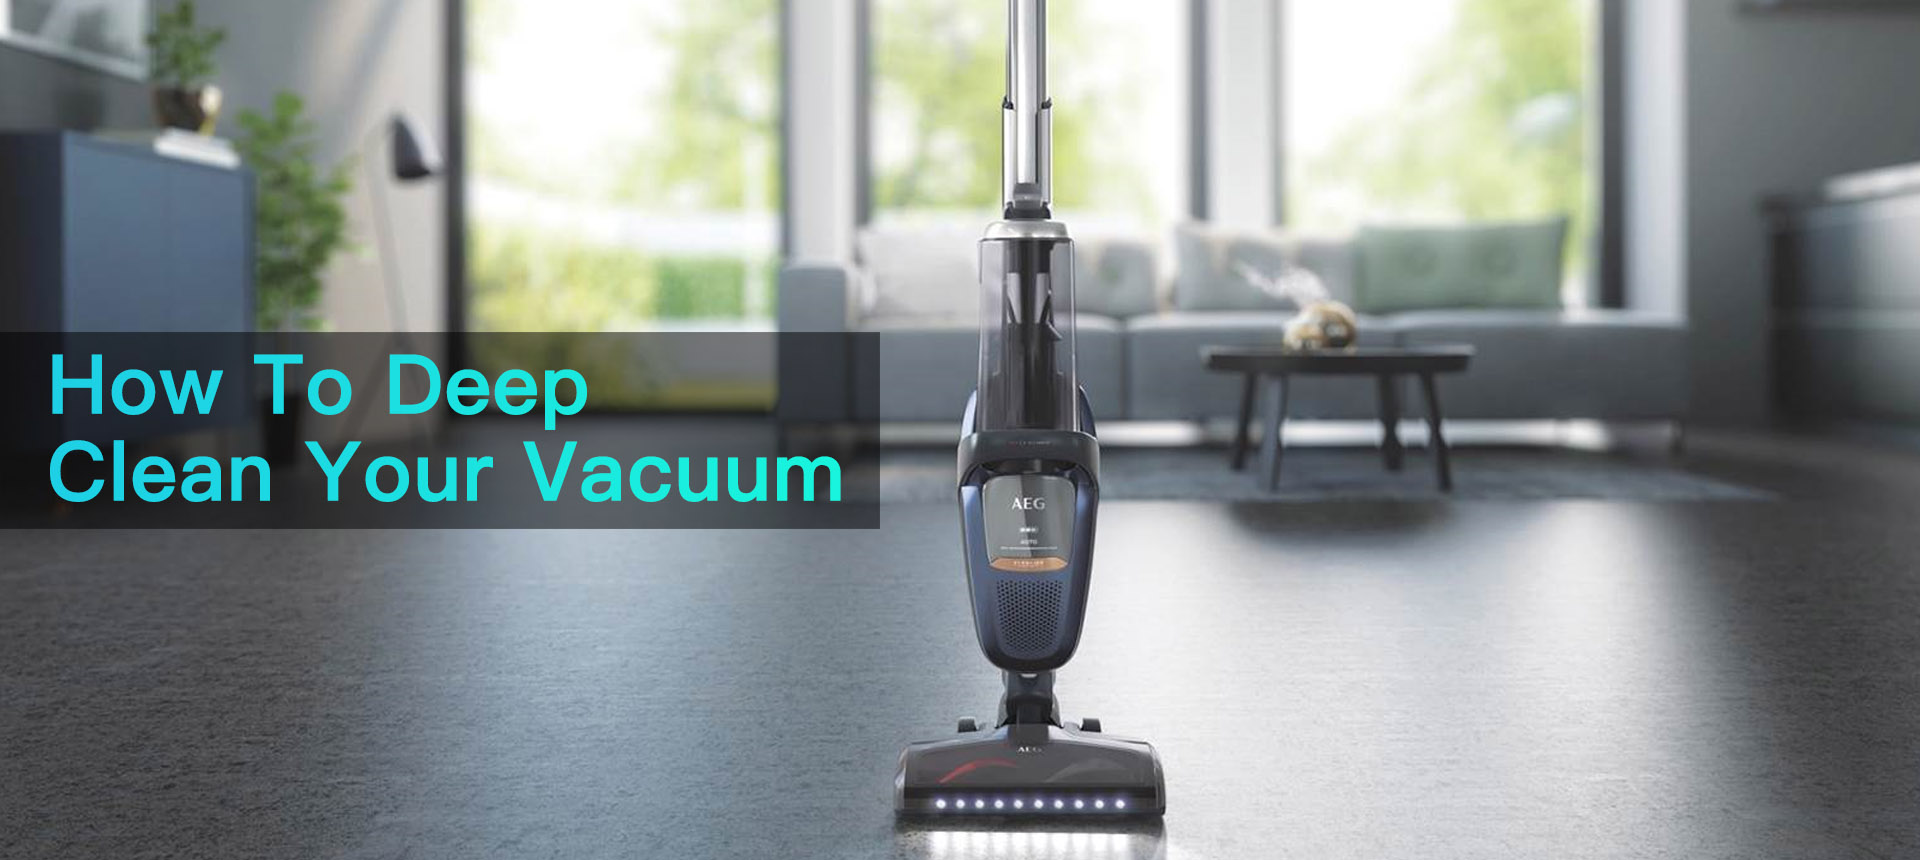 How To Deep Clean Your Vacuum